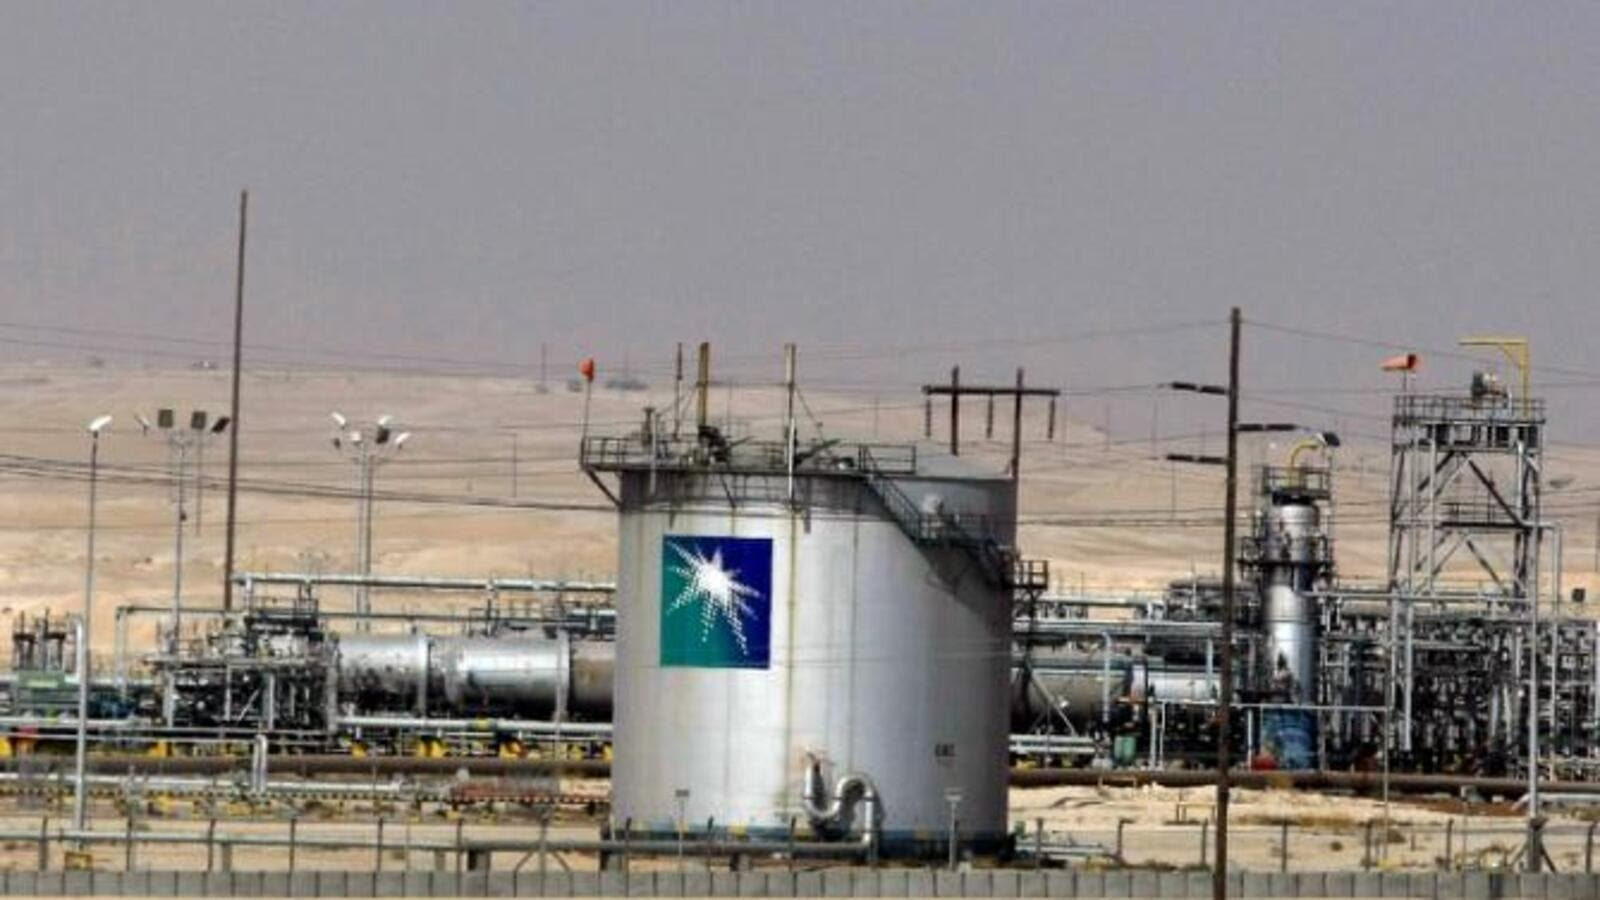 The agreement would allow Egypt to get Saudi oil products and pay the kingdom back within a year. (AFP/Hassan Ammar)